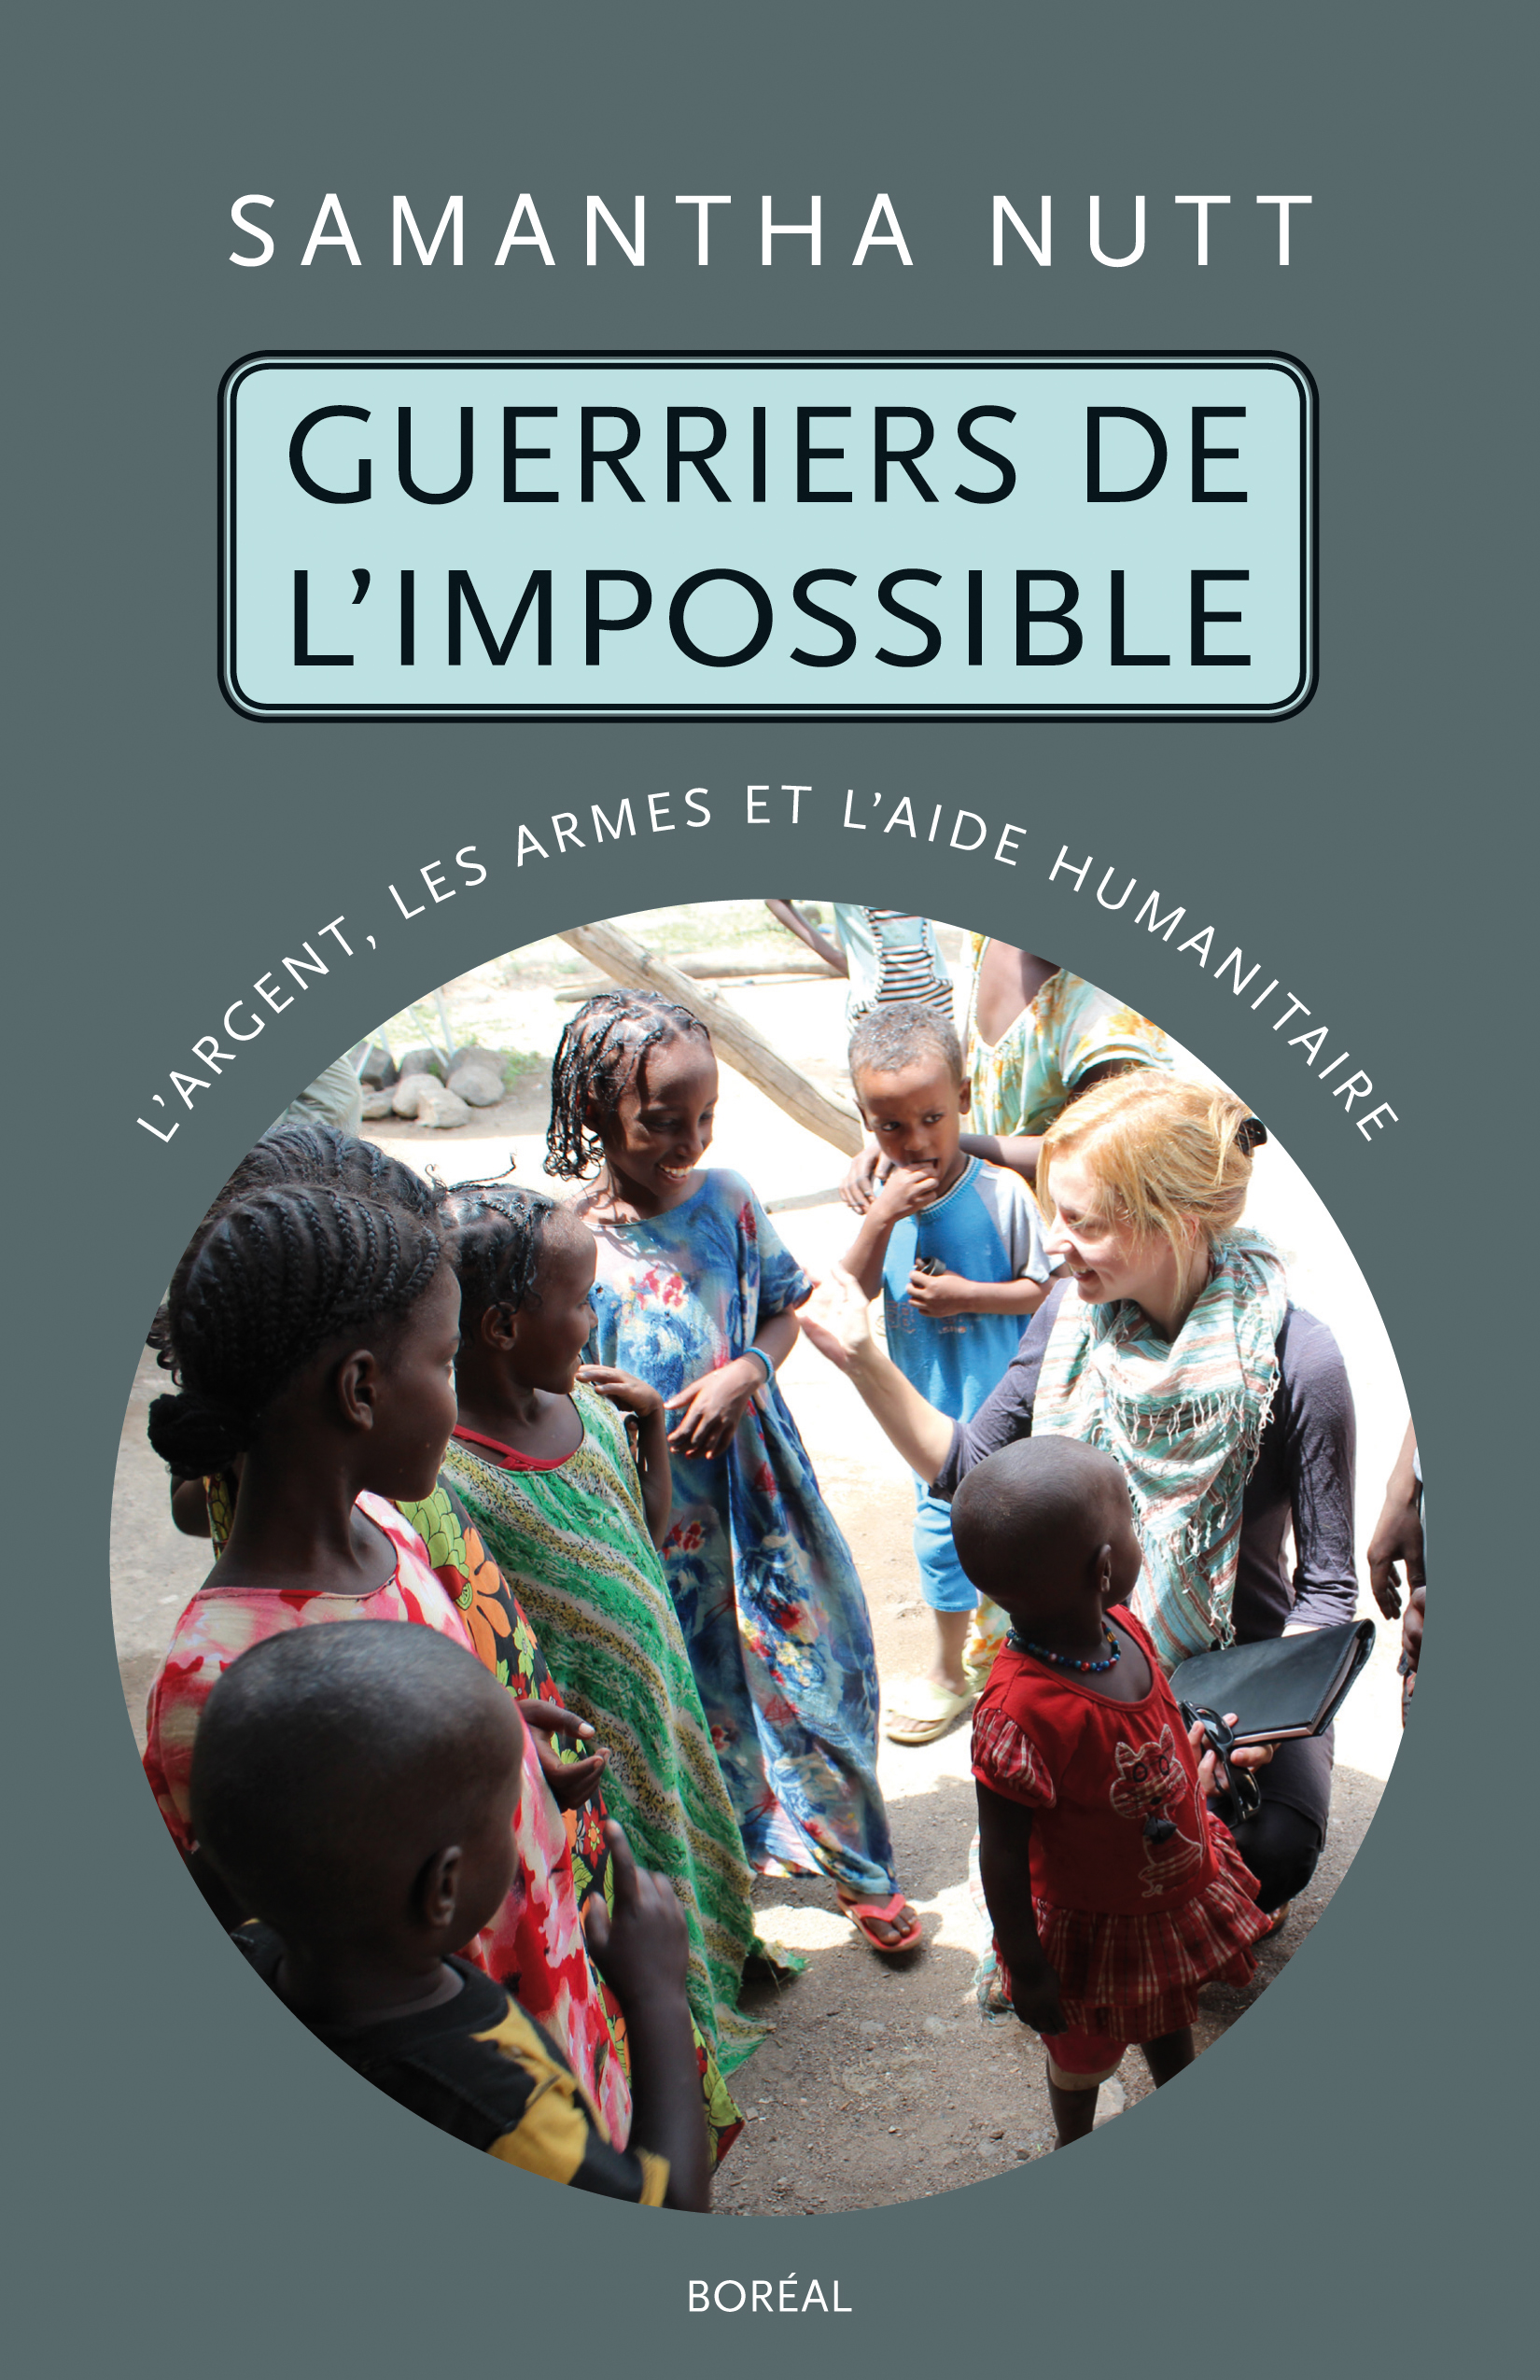 Guerriers de l'impossible